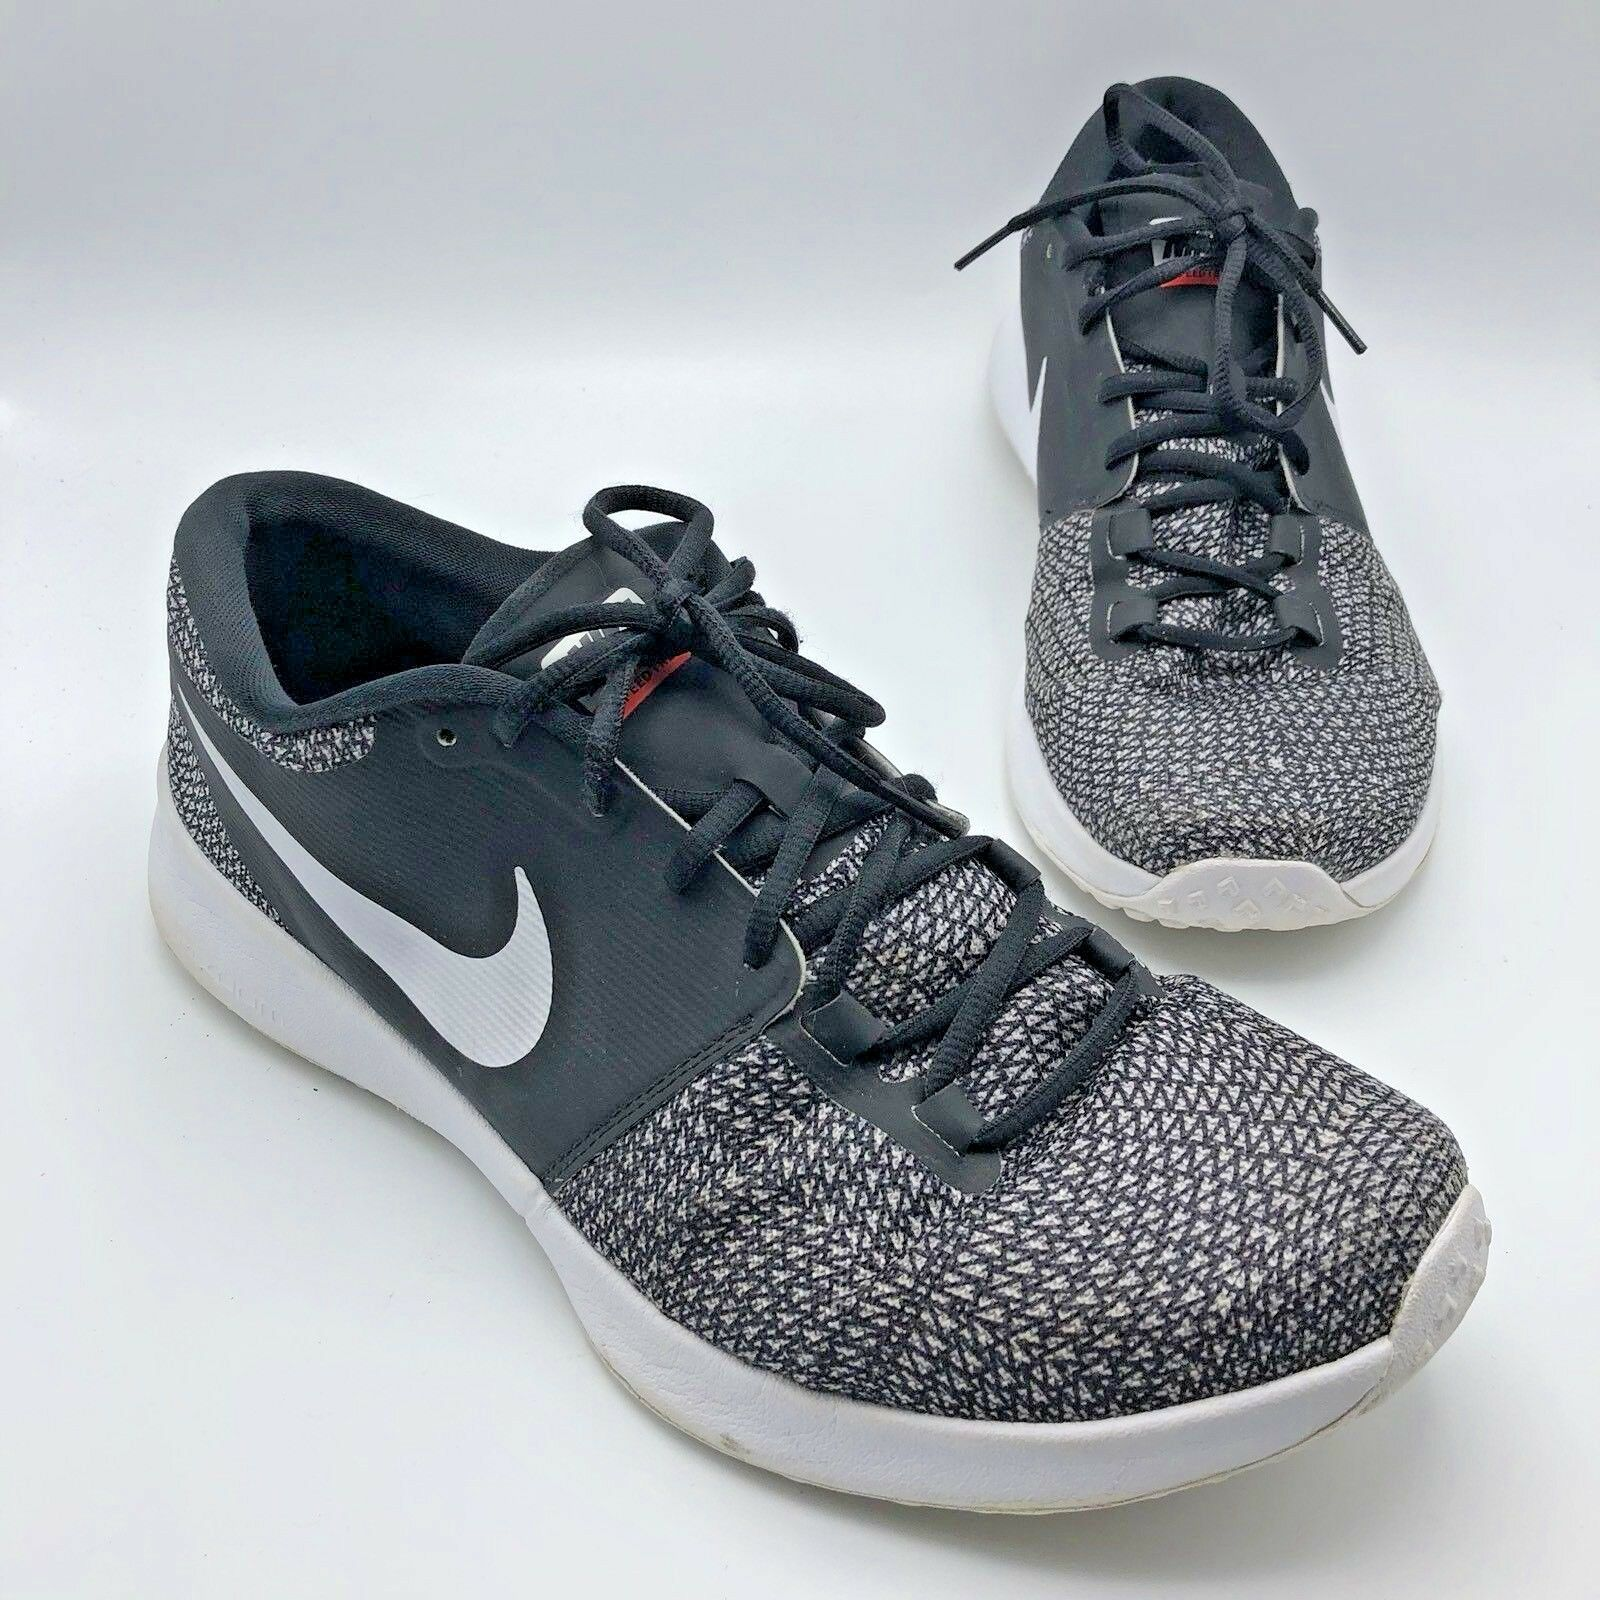 Nike SpeedTR2 Black and White Knit Training Sneaker Shoes Comfortable